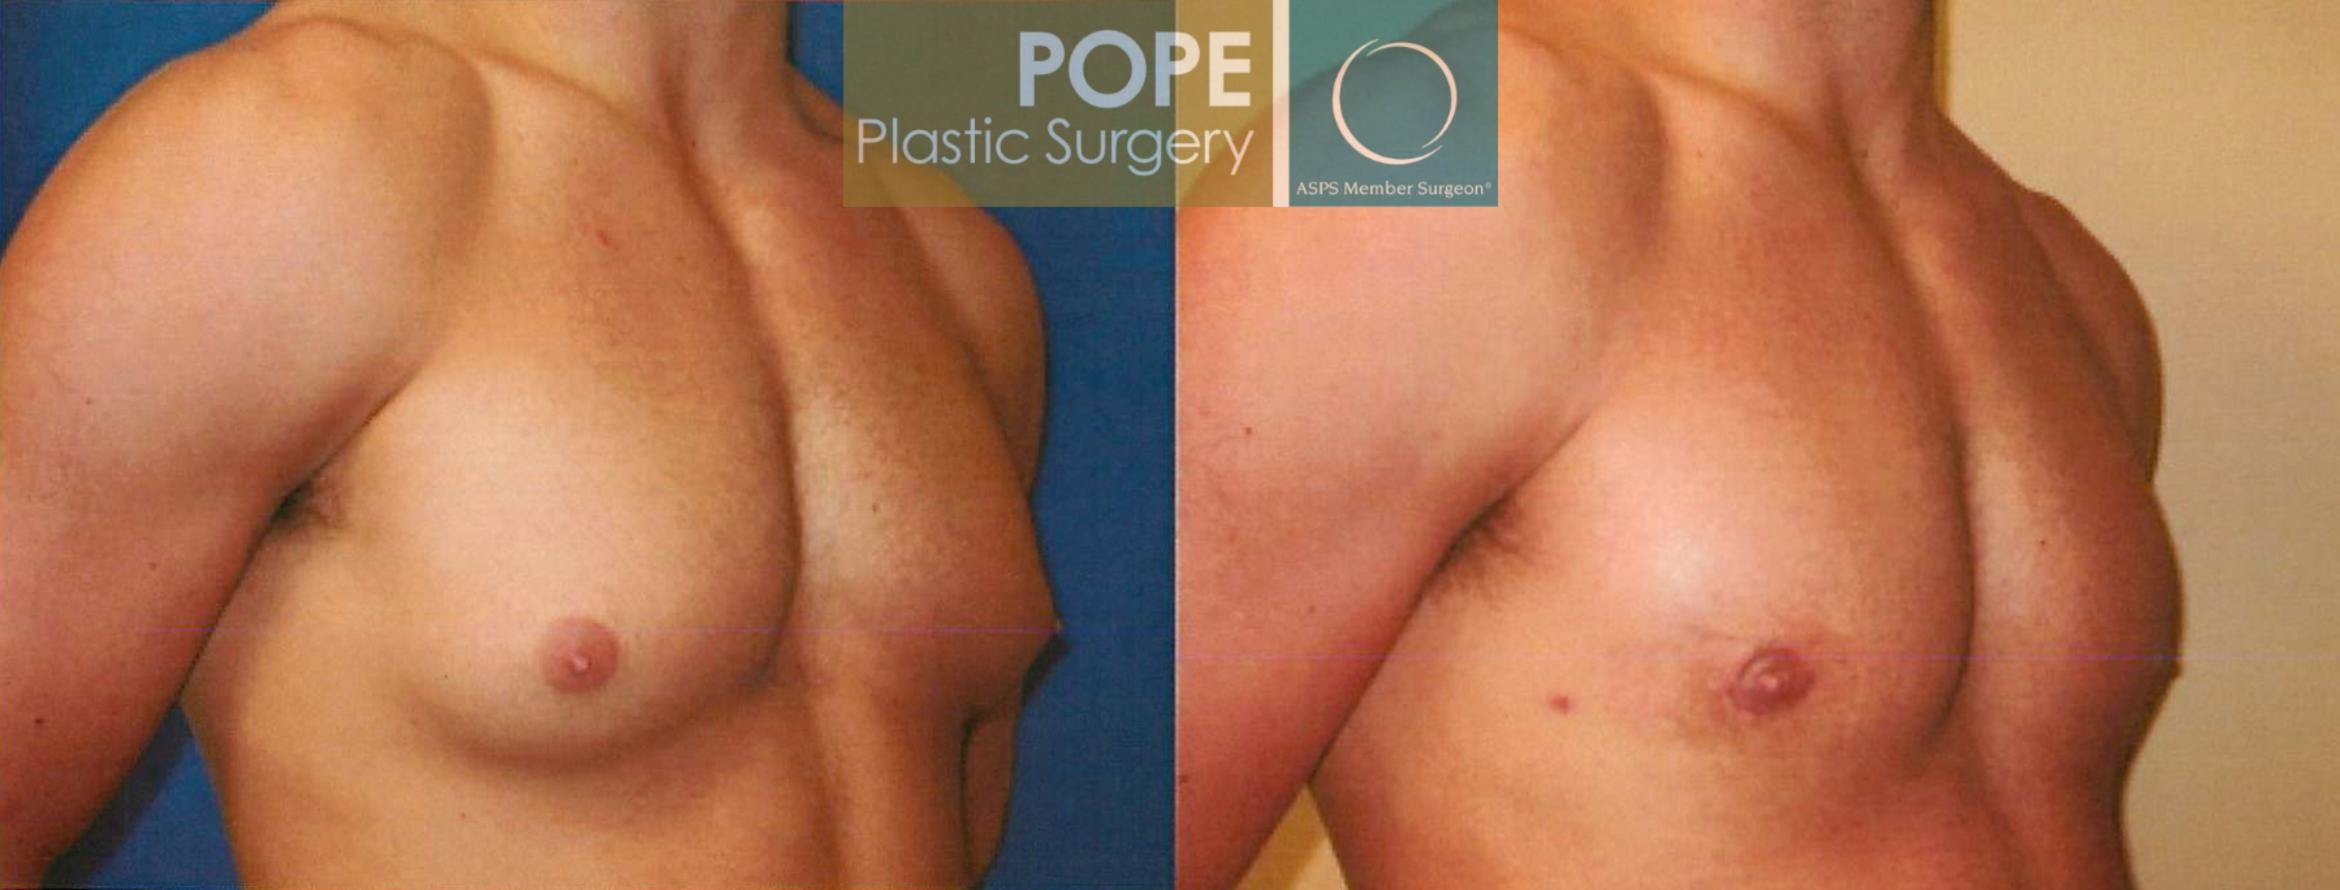 Male Breast Reduction Case 96 Before & After View #2 | Orlando, FL | Pope Plastic Surgery